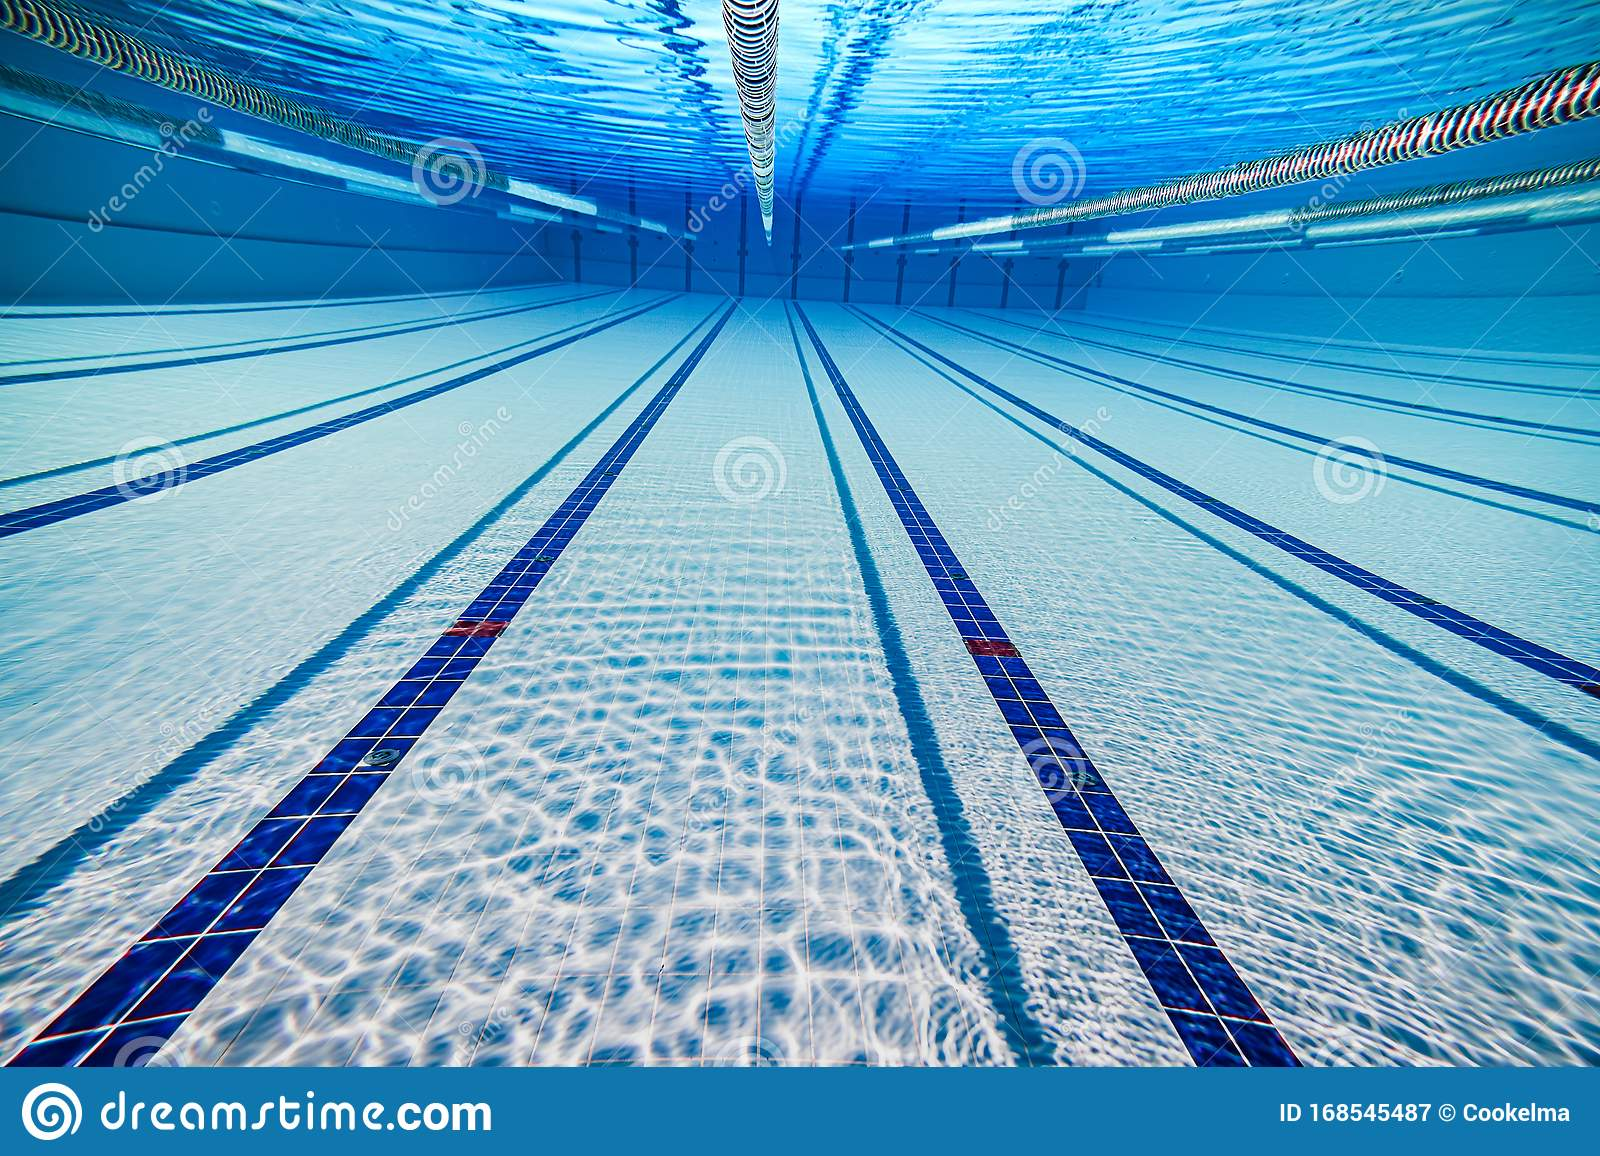 Olympic Swimming Pool Under Water Background Stock Image Image Of Leisure Recreation 168545487